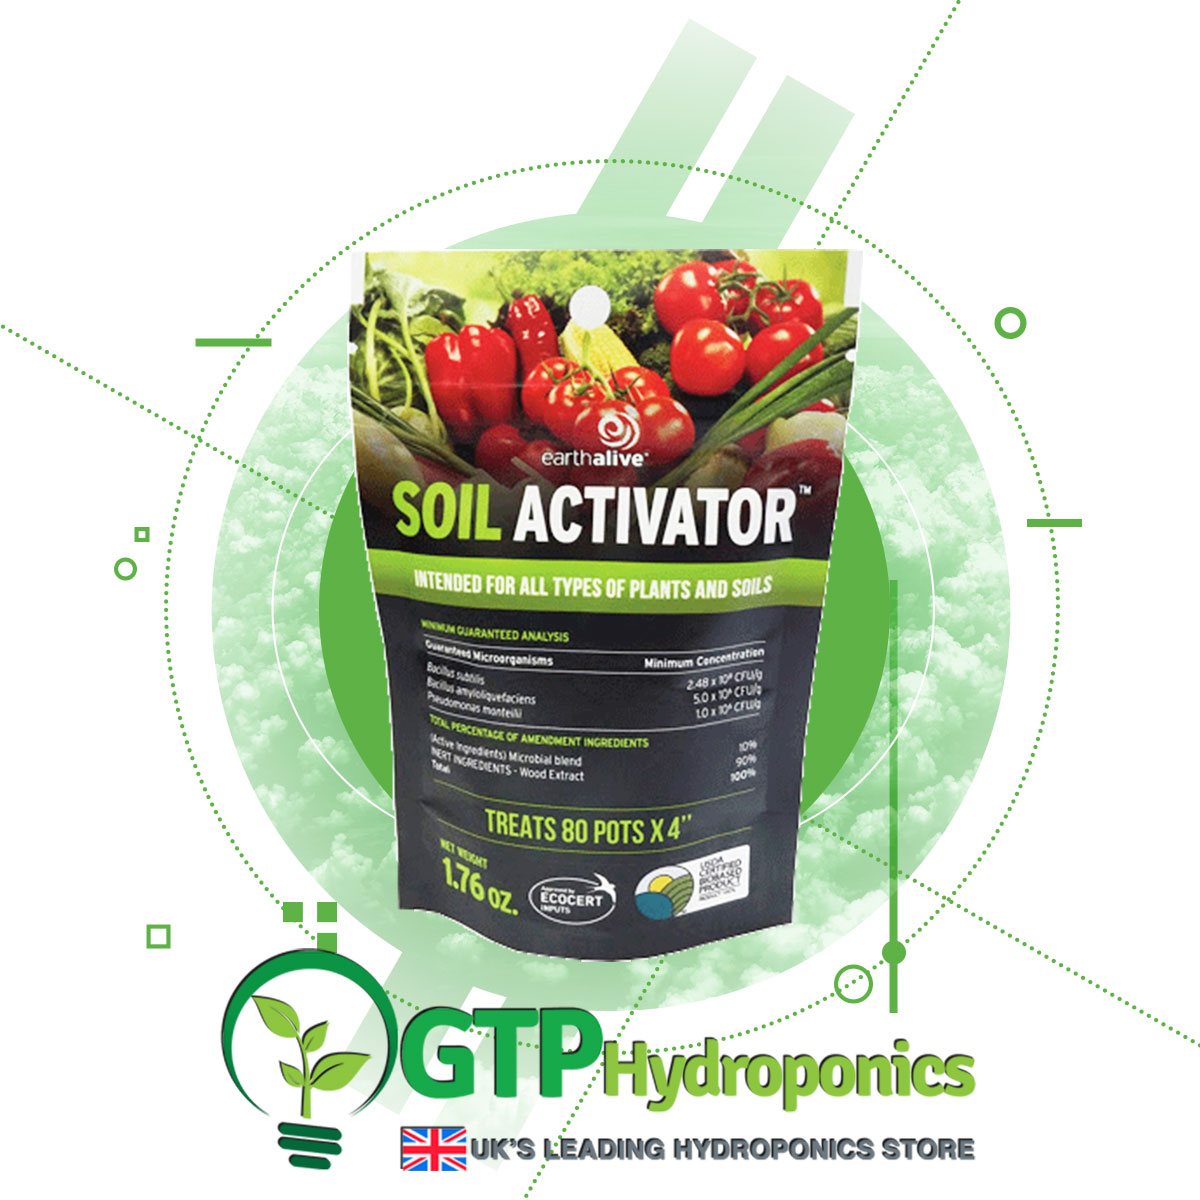 Earth Alive Soil Activator product